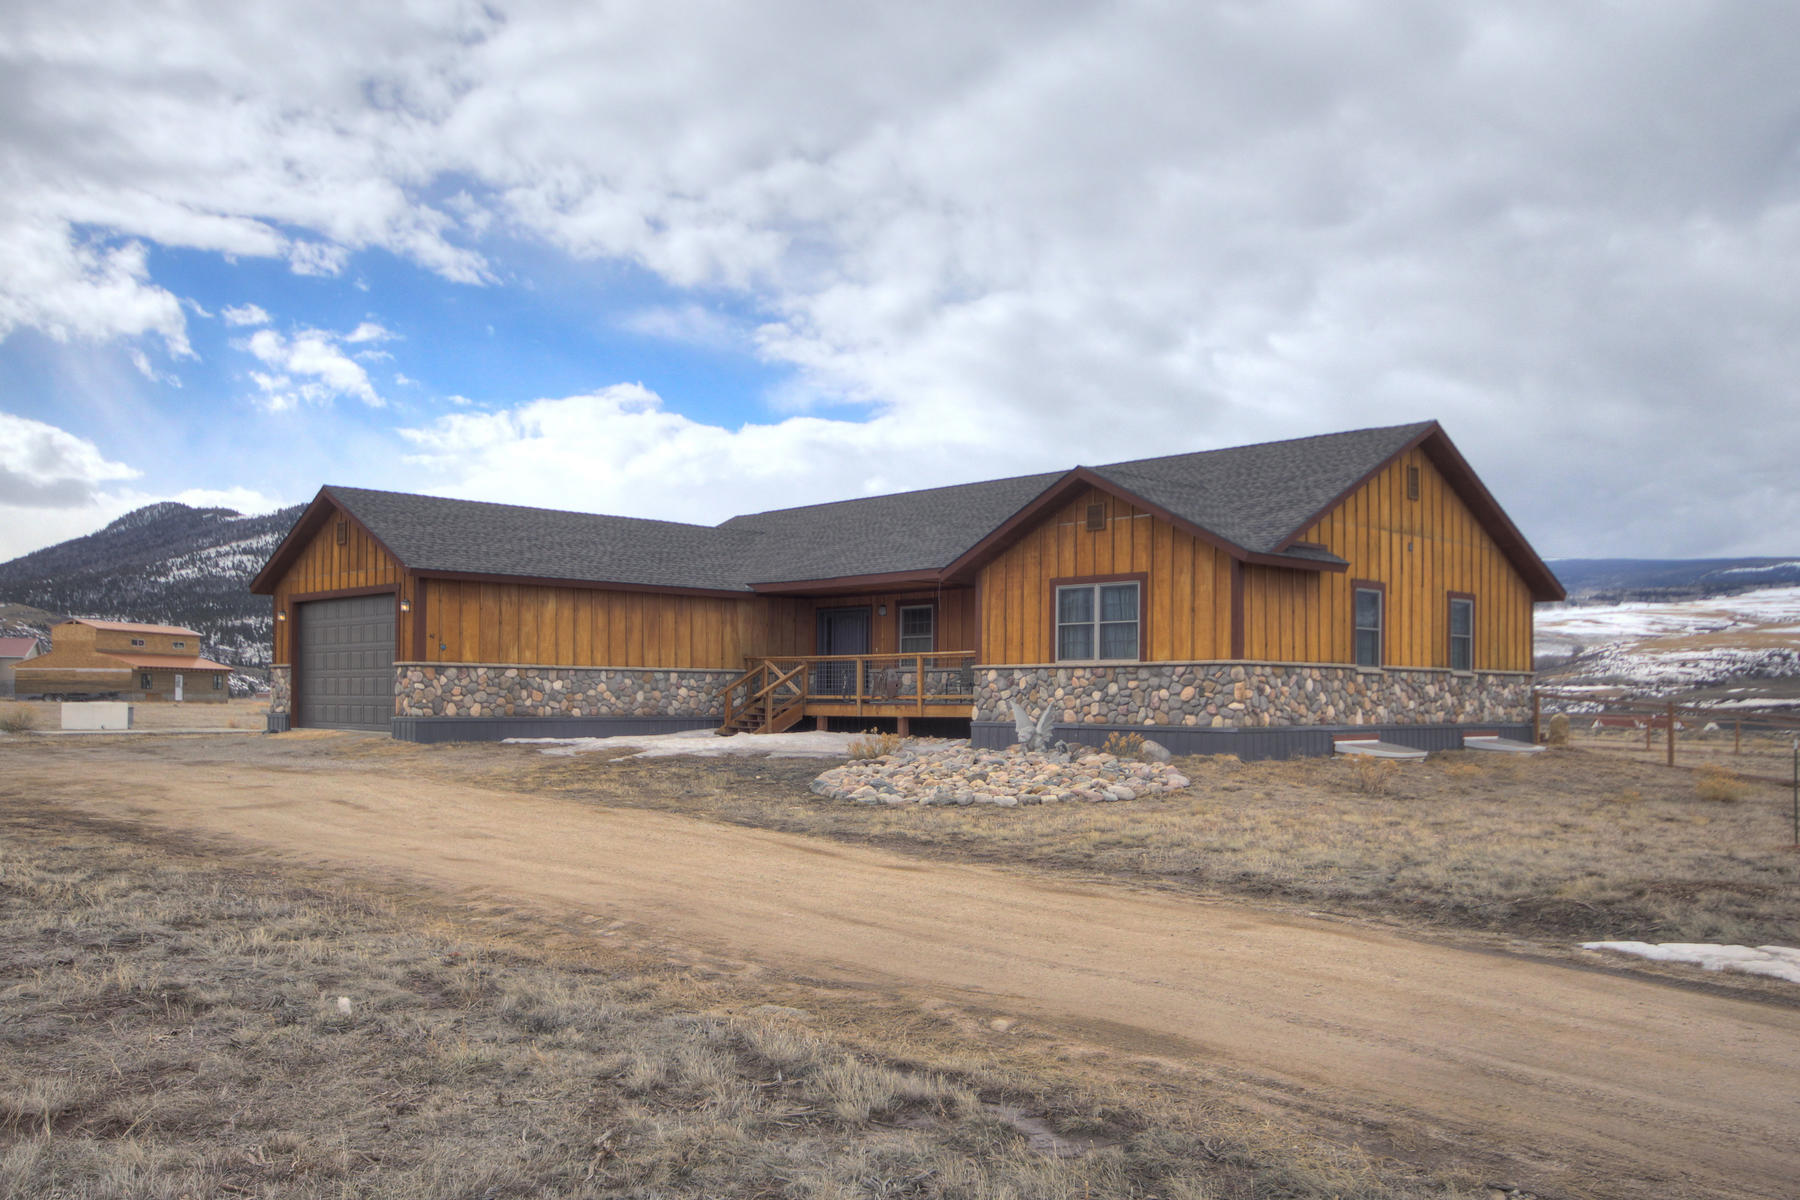 Single Family Home for Active at Blue Valley Acres Country Style Home 40 CR 1017 Road Kremmling, Colorado 80459 United States